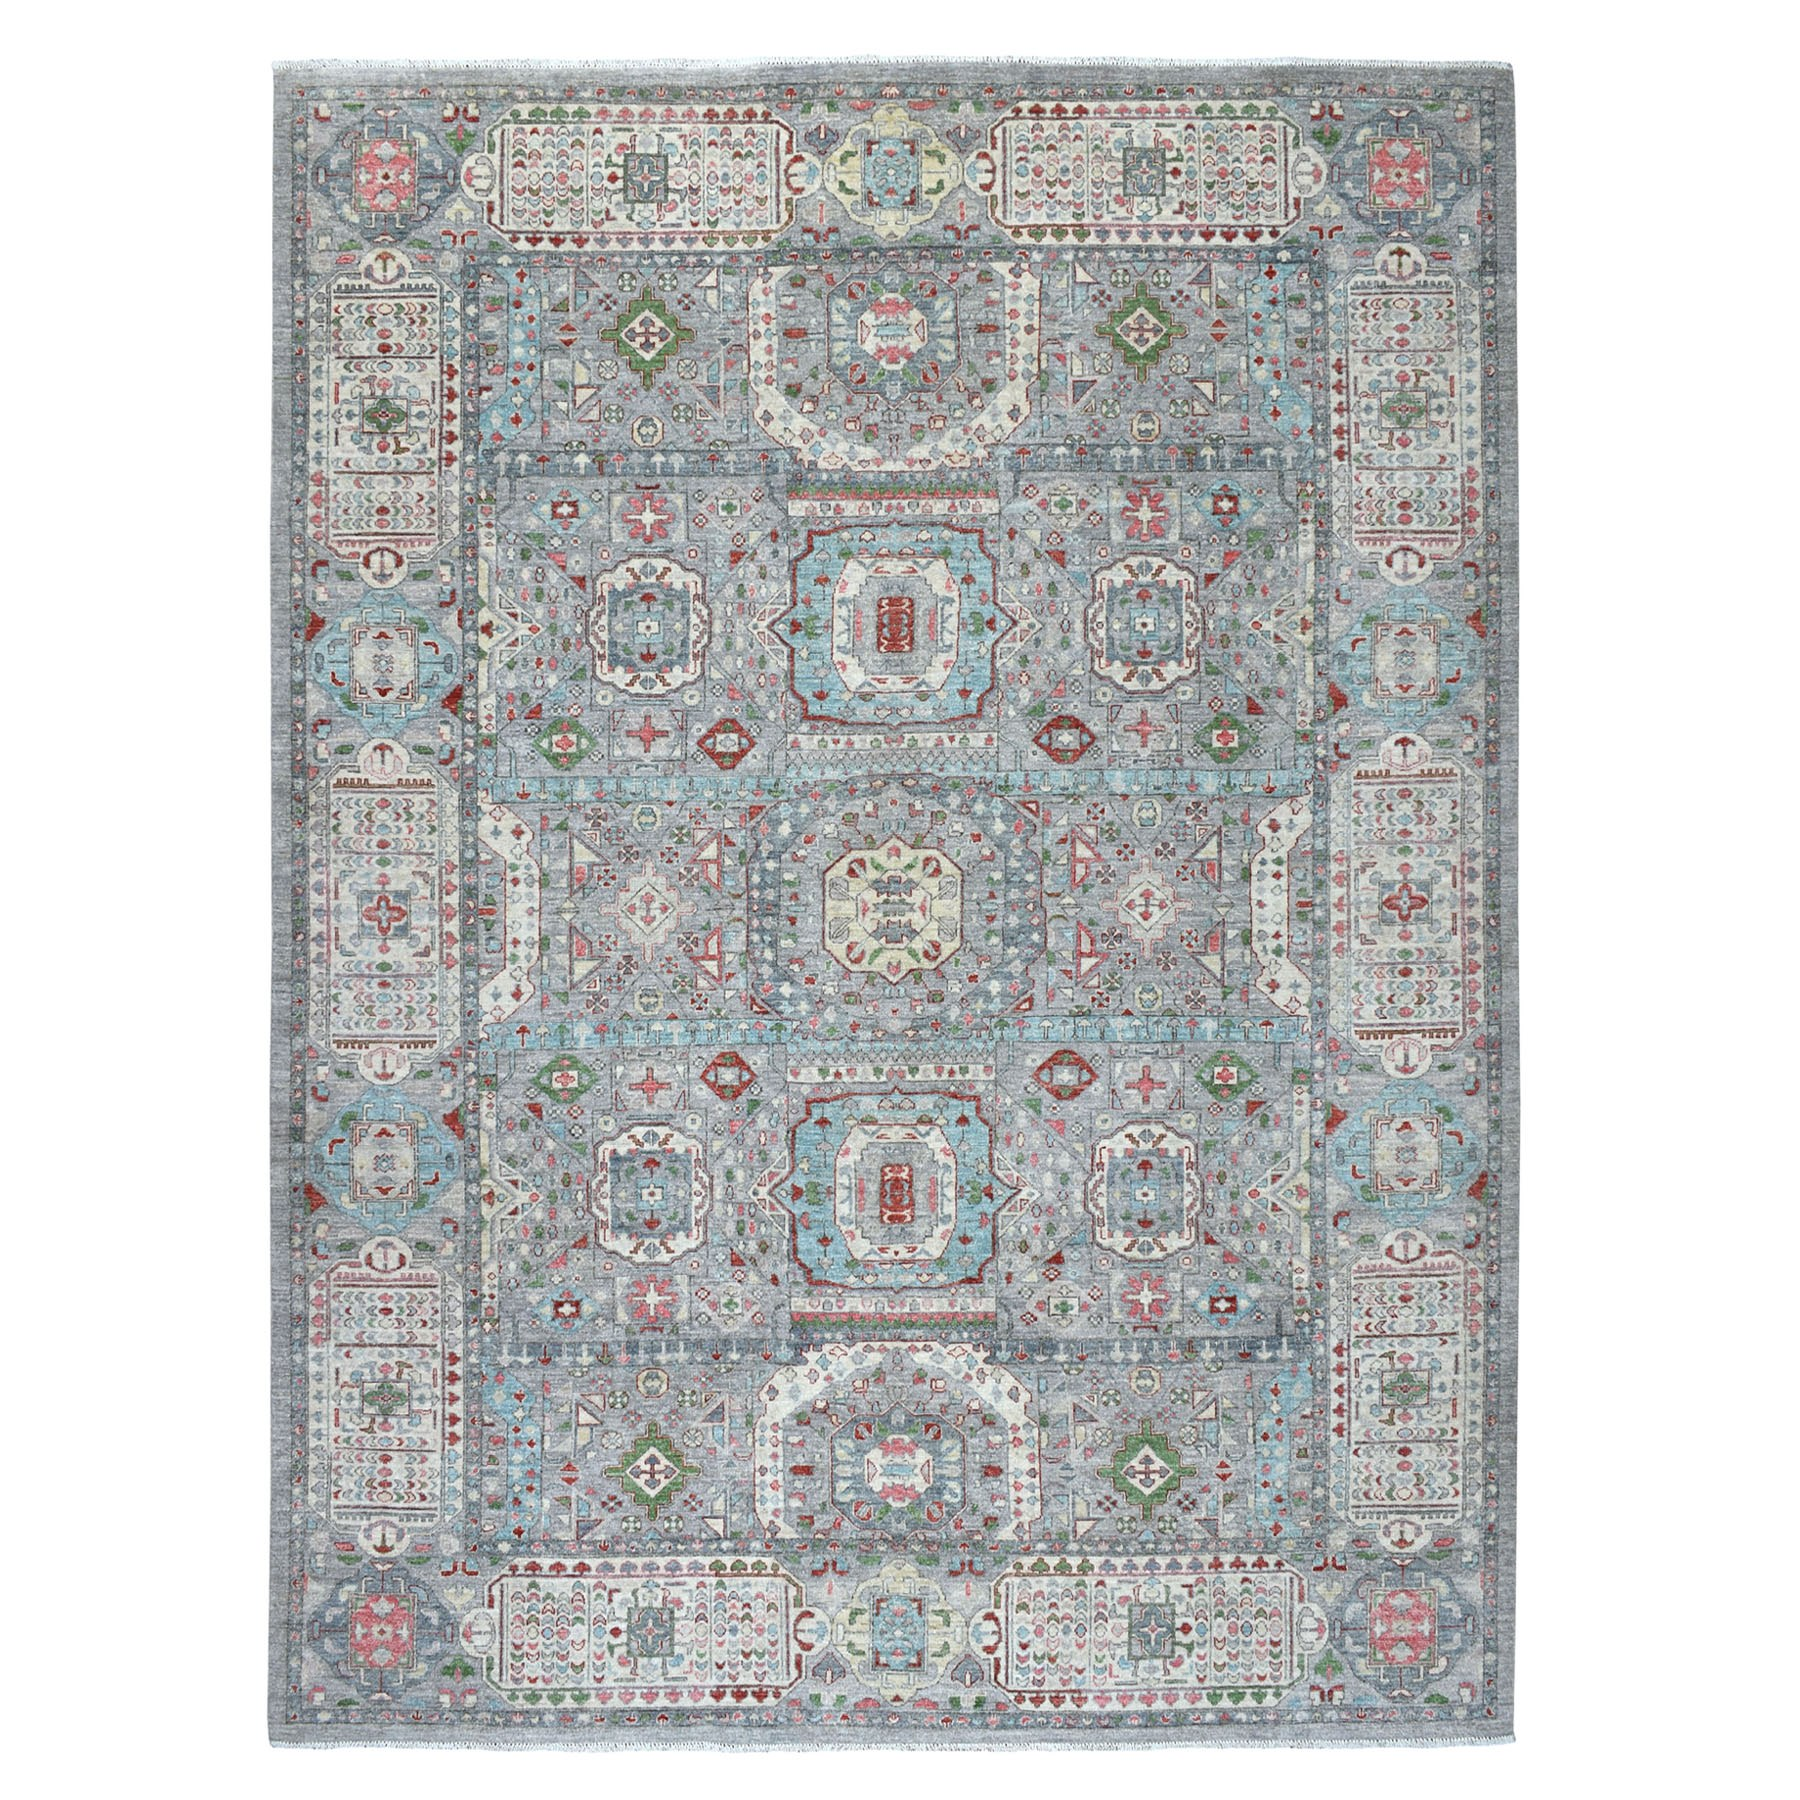 "8'10""x12' Peshawar With Mamluk Design With Pop Of Color Hand Woven Oriental Rug"